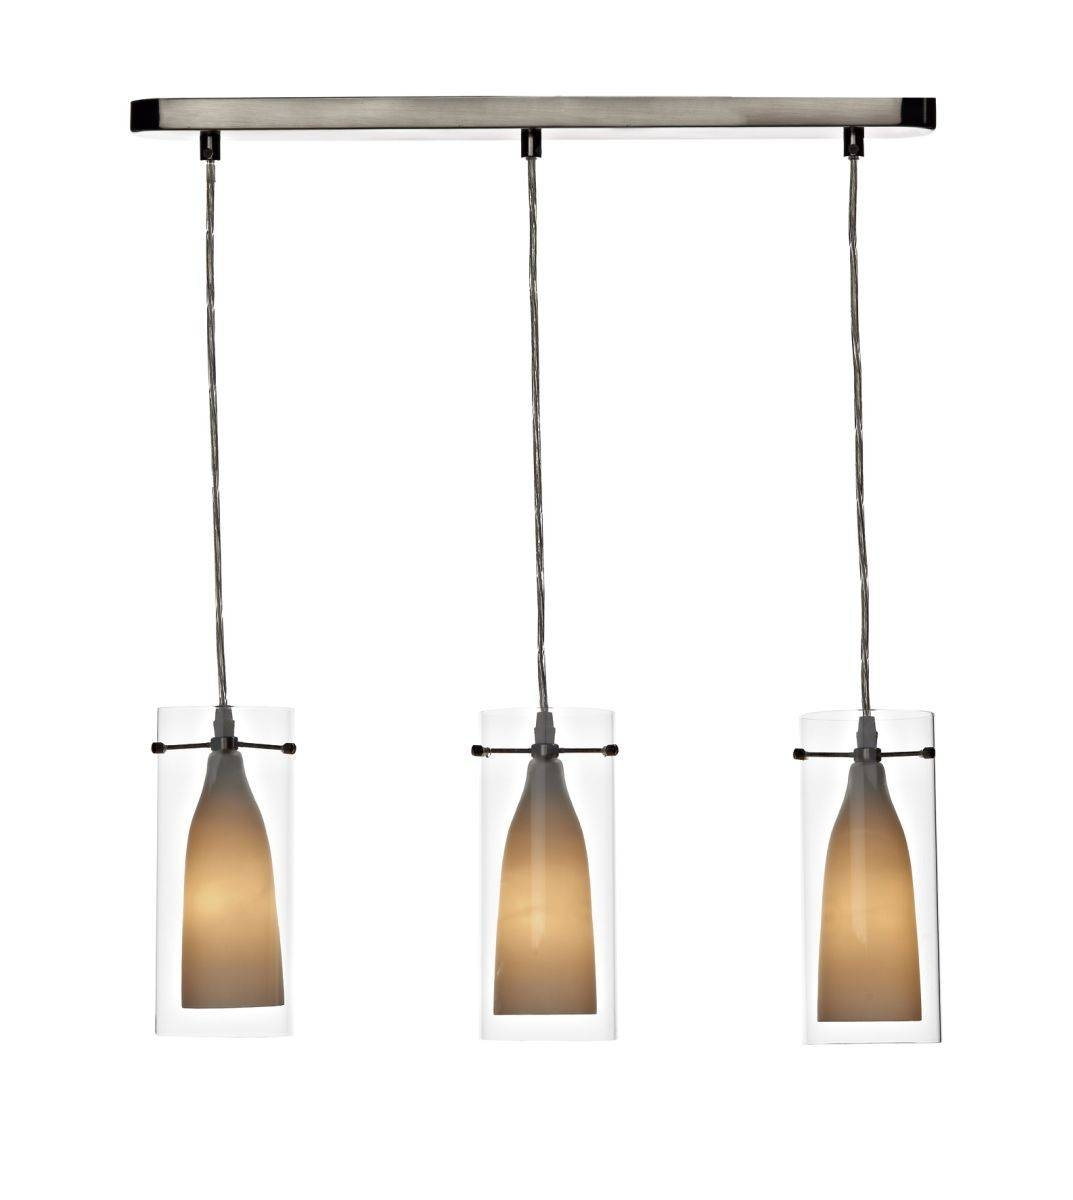 Best Multi Light Pendant 85 For Your Juno Track Lighting Pendants Pertaining To Juno Track Lighting Pendants (Image 2 of 15)